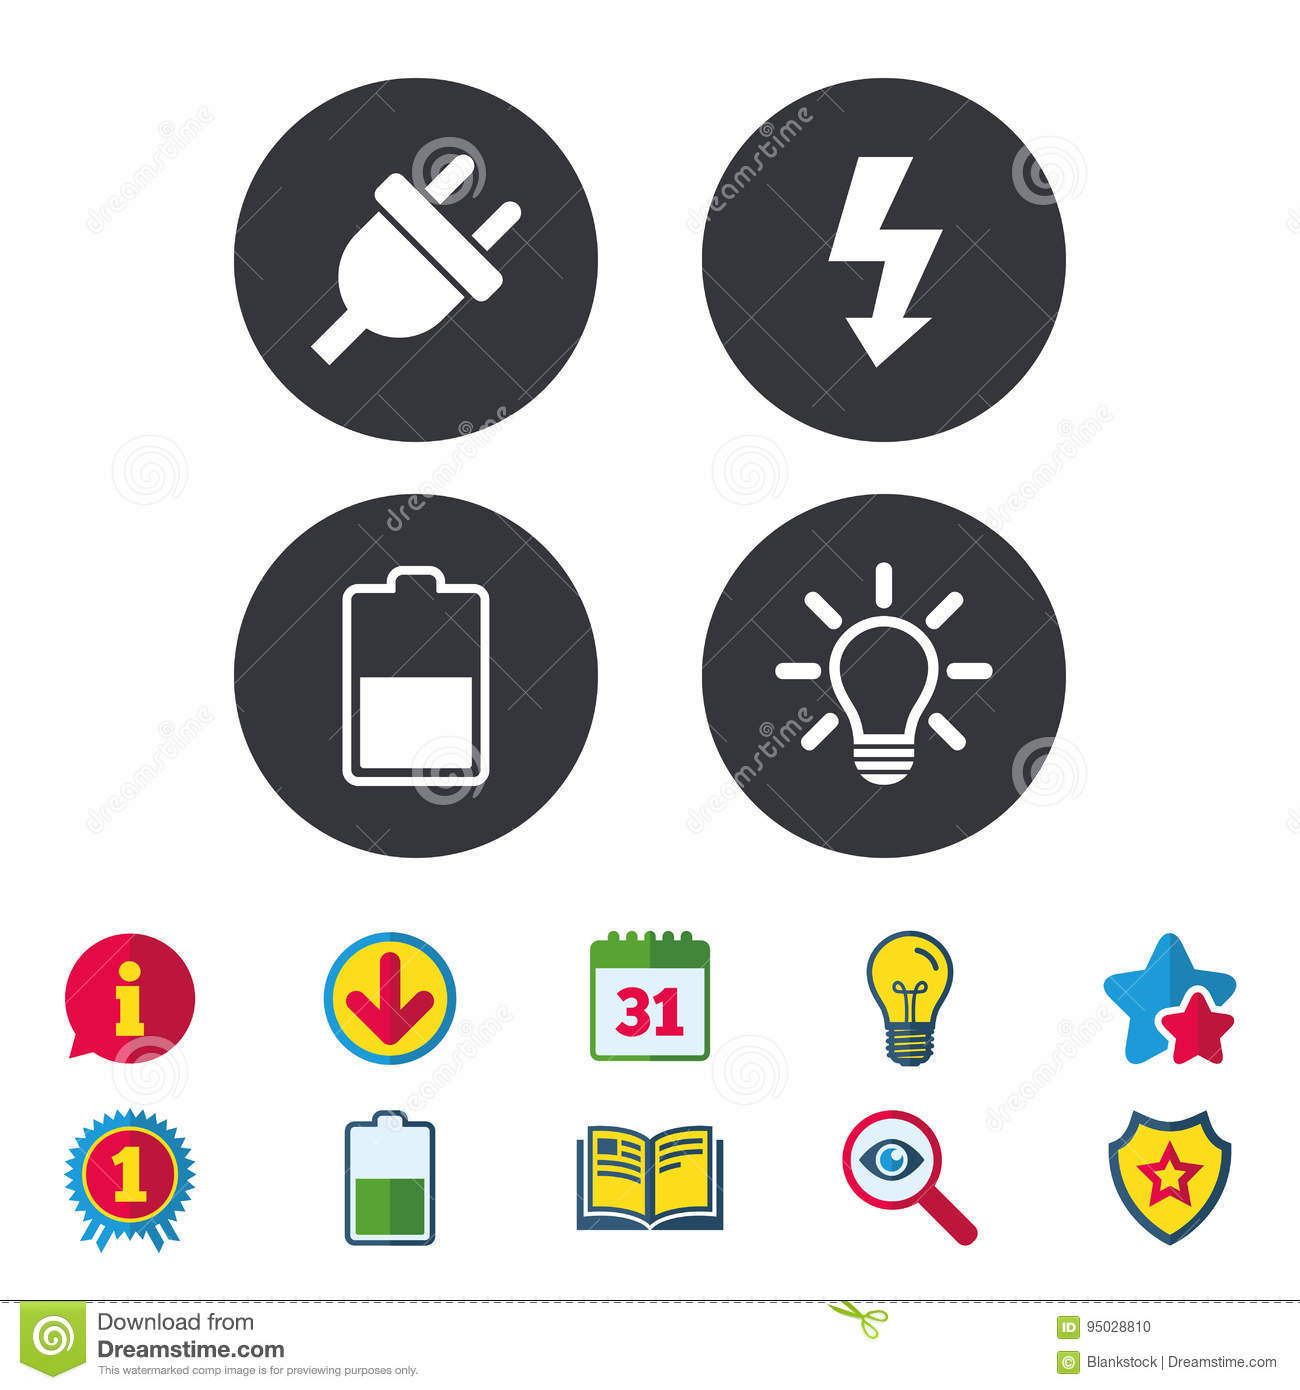 Enchanting Electrical Signs And Symbols Photos - Everything You Need ...